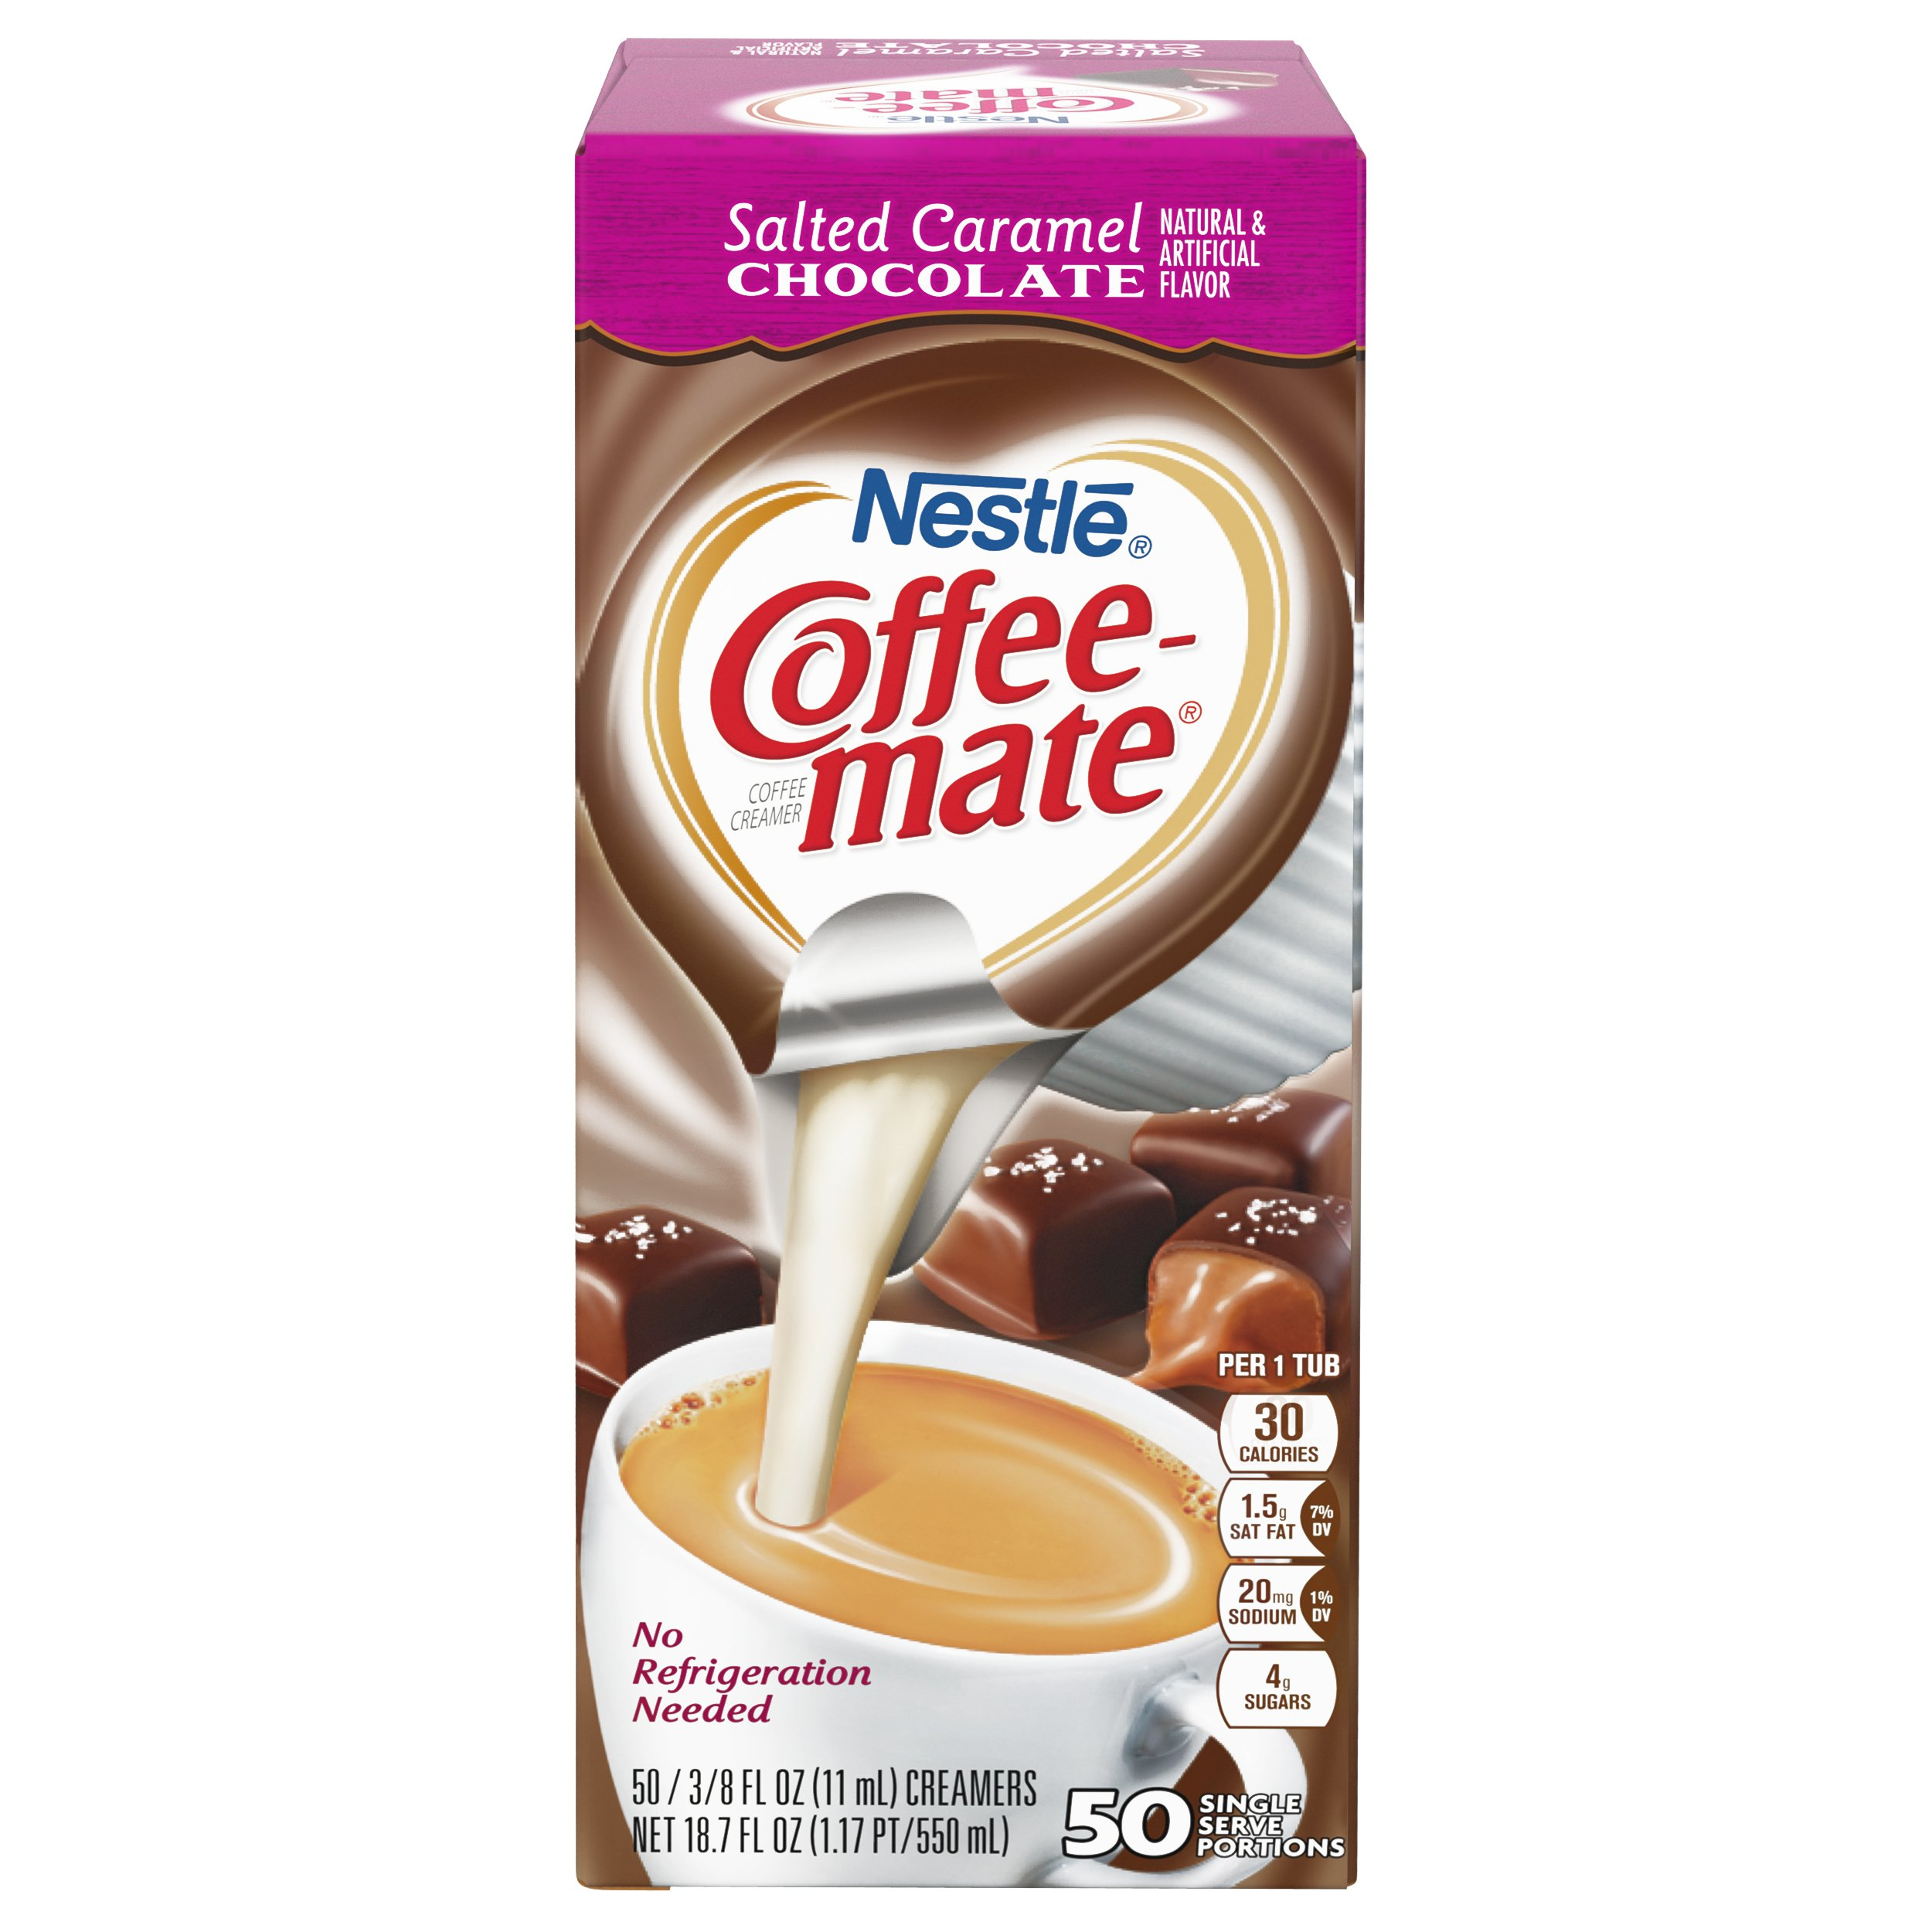 NESTLE COFFEE-MATE Coffee Creamer, Salted Caramel Chocolate, liquid creamer singles, 50 Count, Pack of 4 by Nestle Coffee Mate (Image #4)